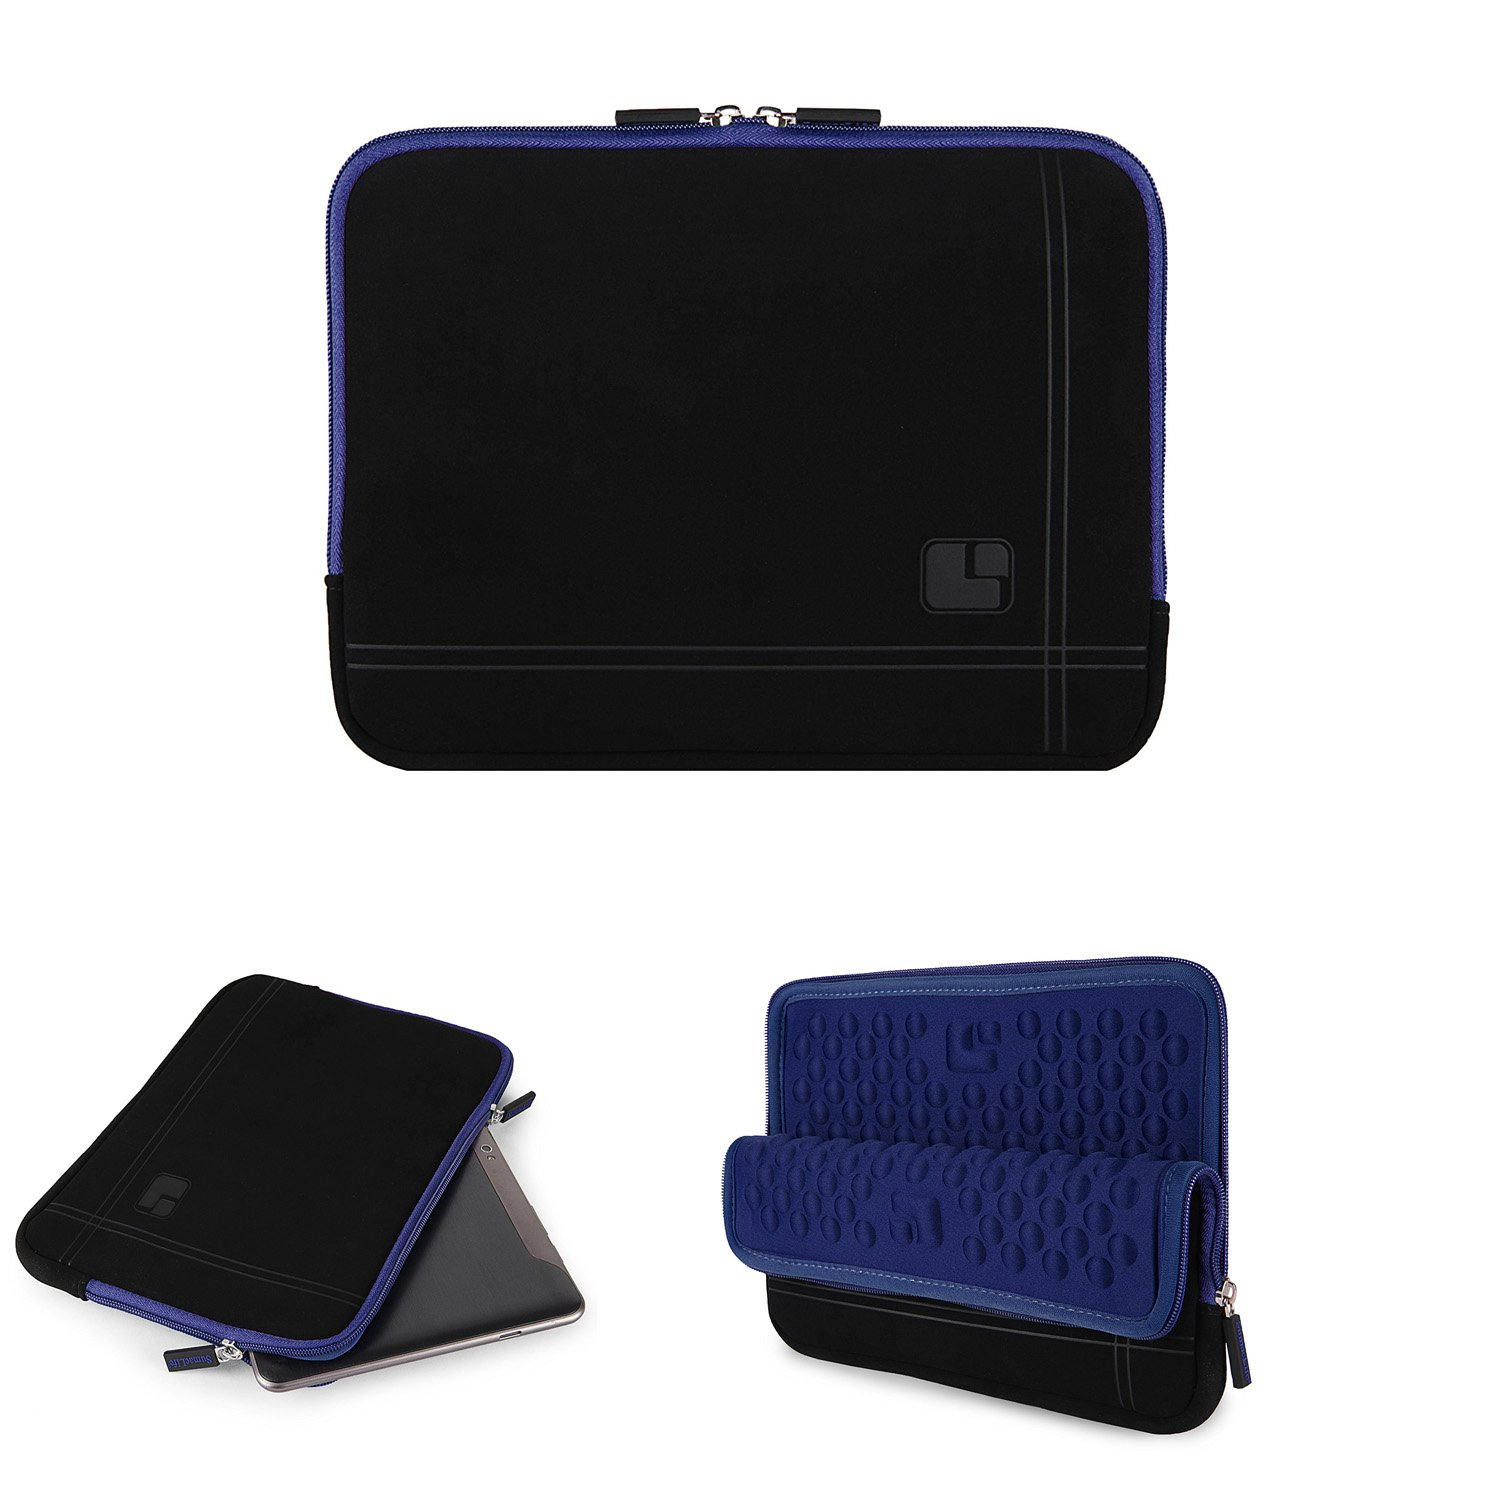 Cady Messenger Bag for WinBook Tablets up to 10.5 inches with Headphones